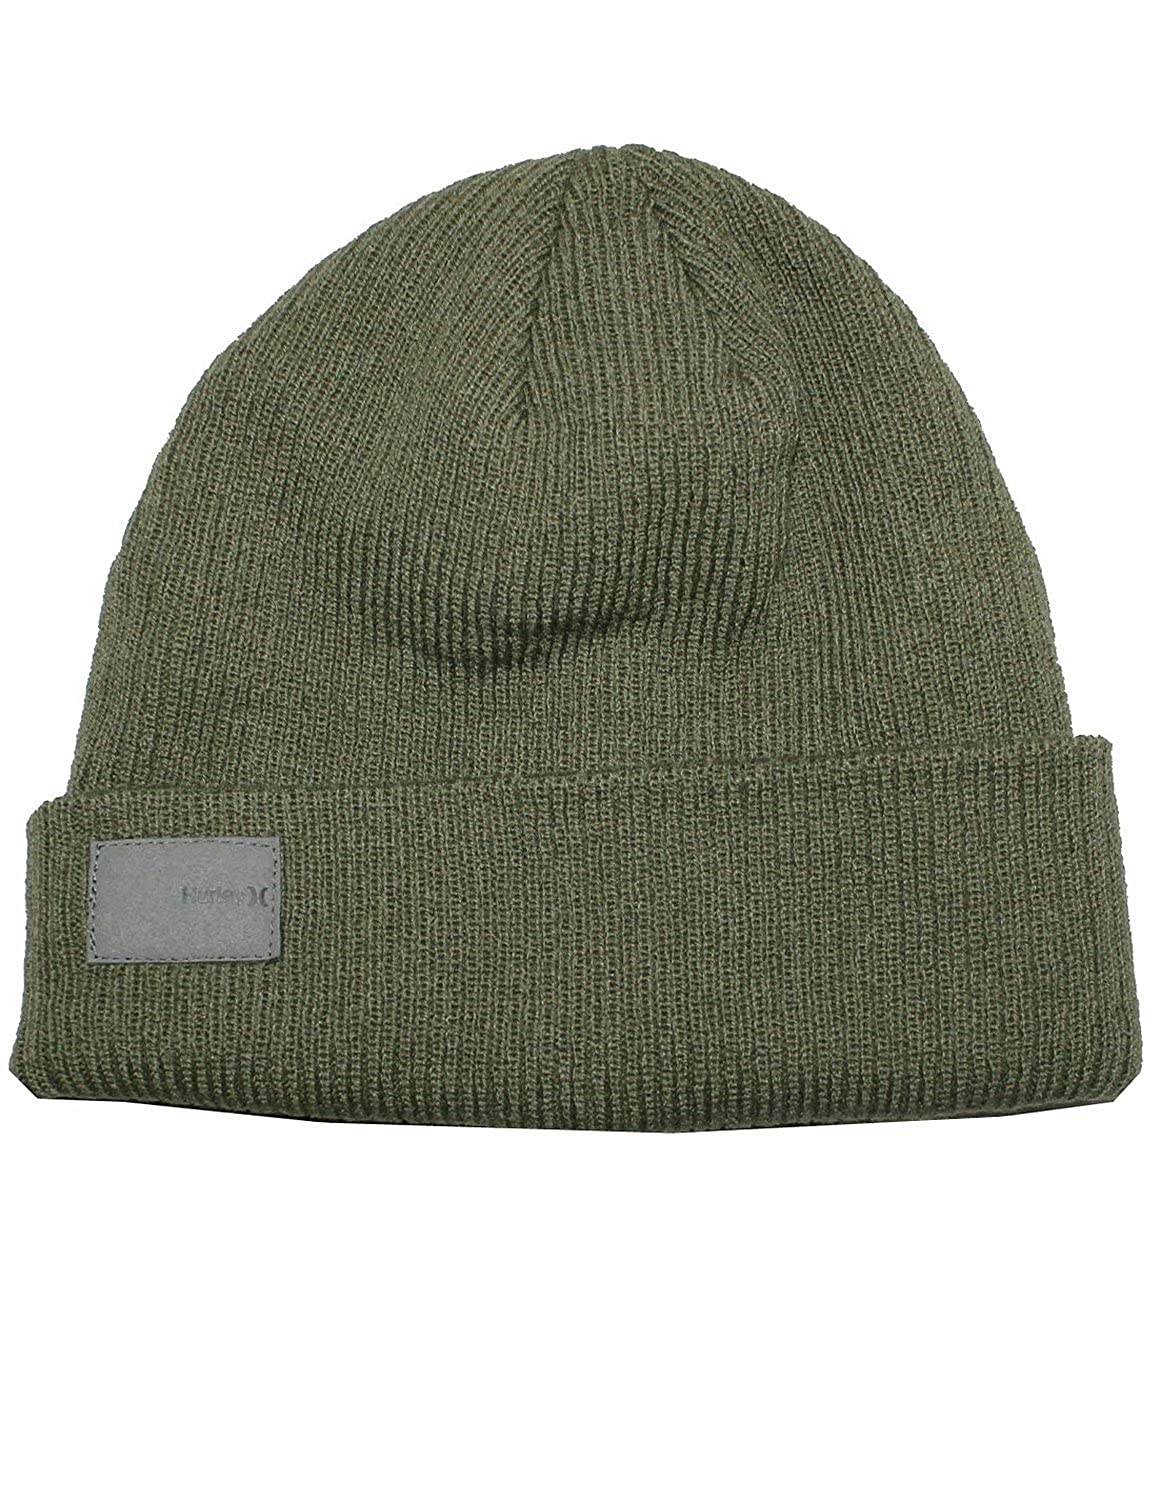 Hurley Unisex Ski & Skate Roll Up Knit Beanie / Winter Hat